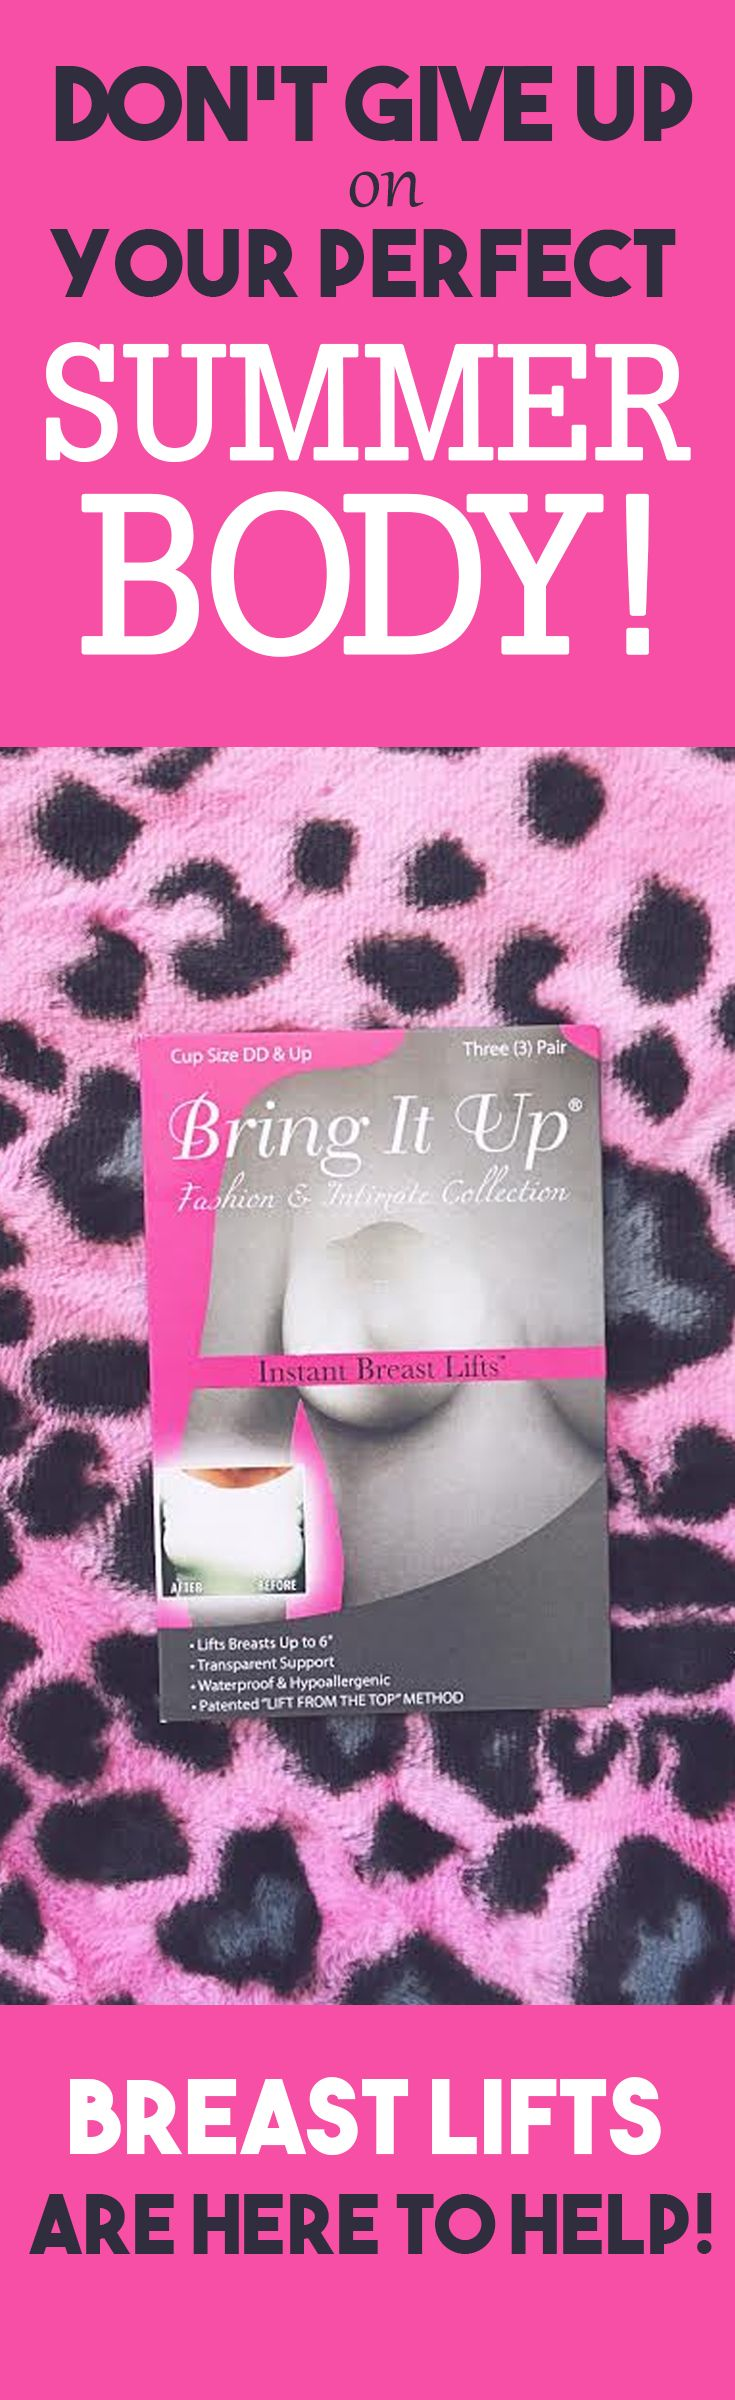 Your perfect summer body is just a click away! Look FIERCE this coming season with breast lifts from Bring it Up! Show off your curves at the beach, by the pool, or in some fun backless tops. These breast lifts are backless, easy to use and give the lift you need this summer!  #bringitup #breastlifts #breastshapers #stickybra #stickonbra #pushupbra #model #curves #curvy #girlsgirlsgirls #womensunderwear #bra #bras #leopard #pink